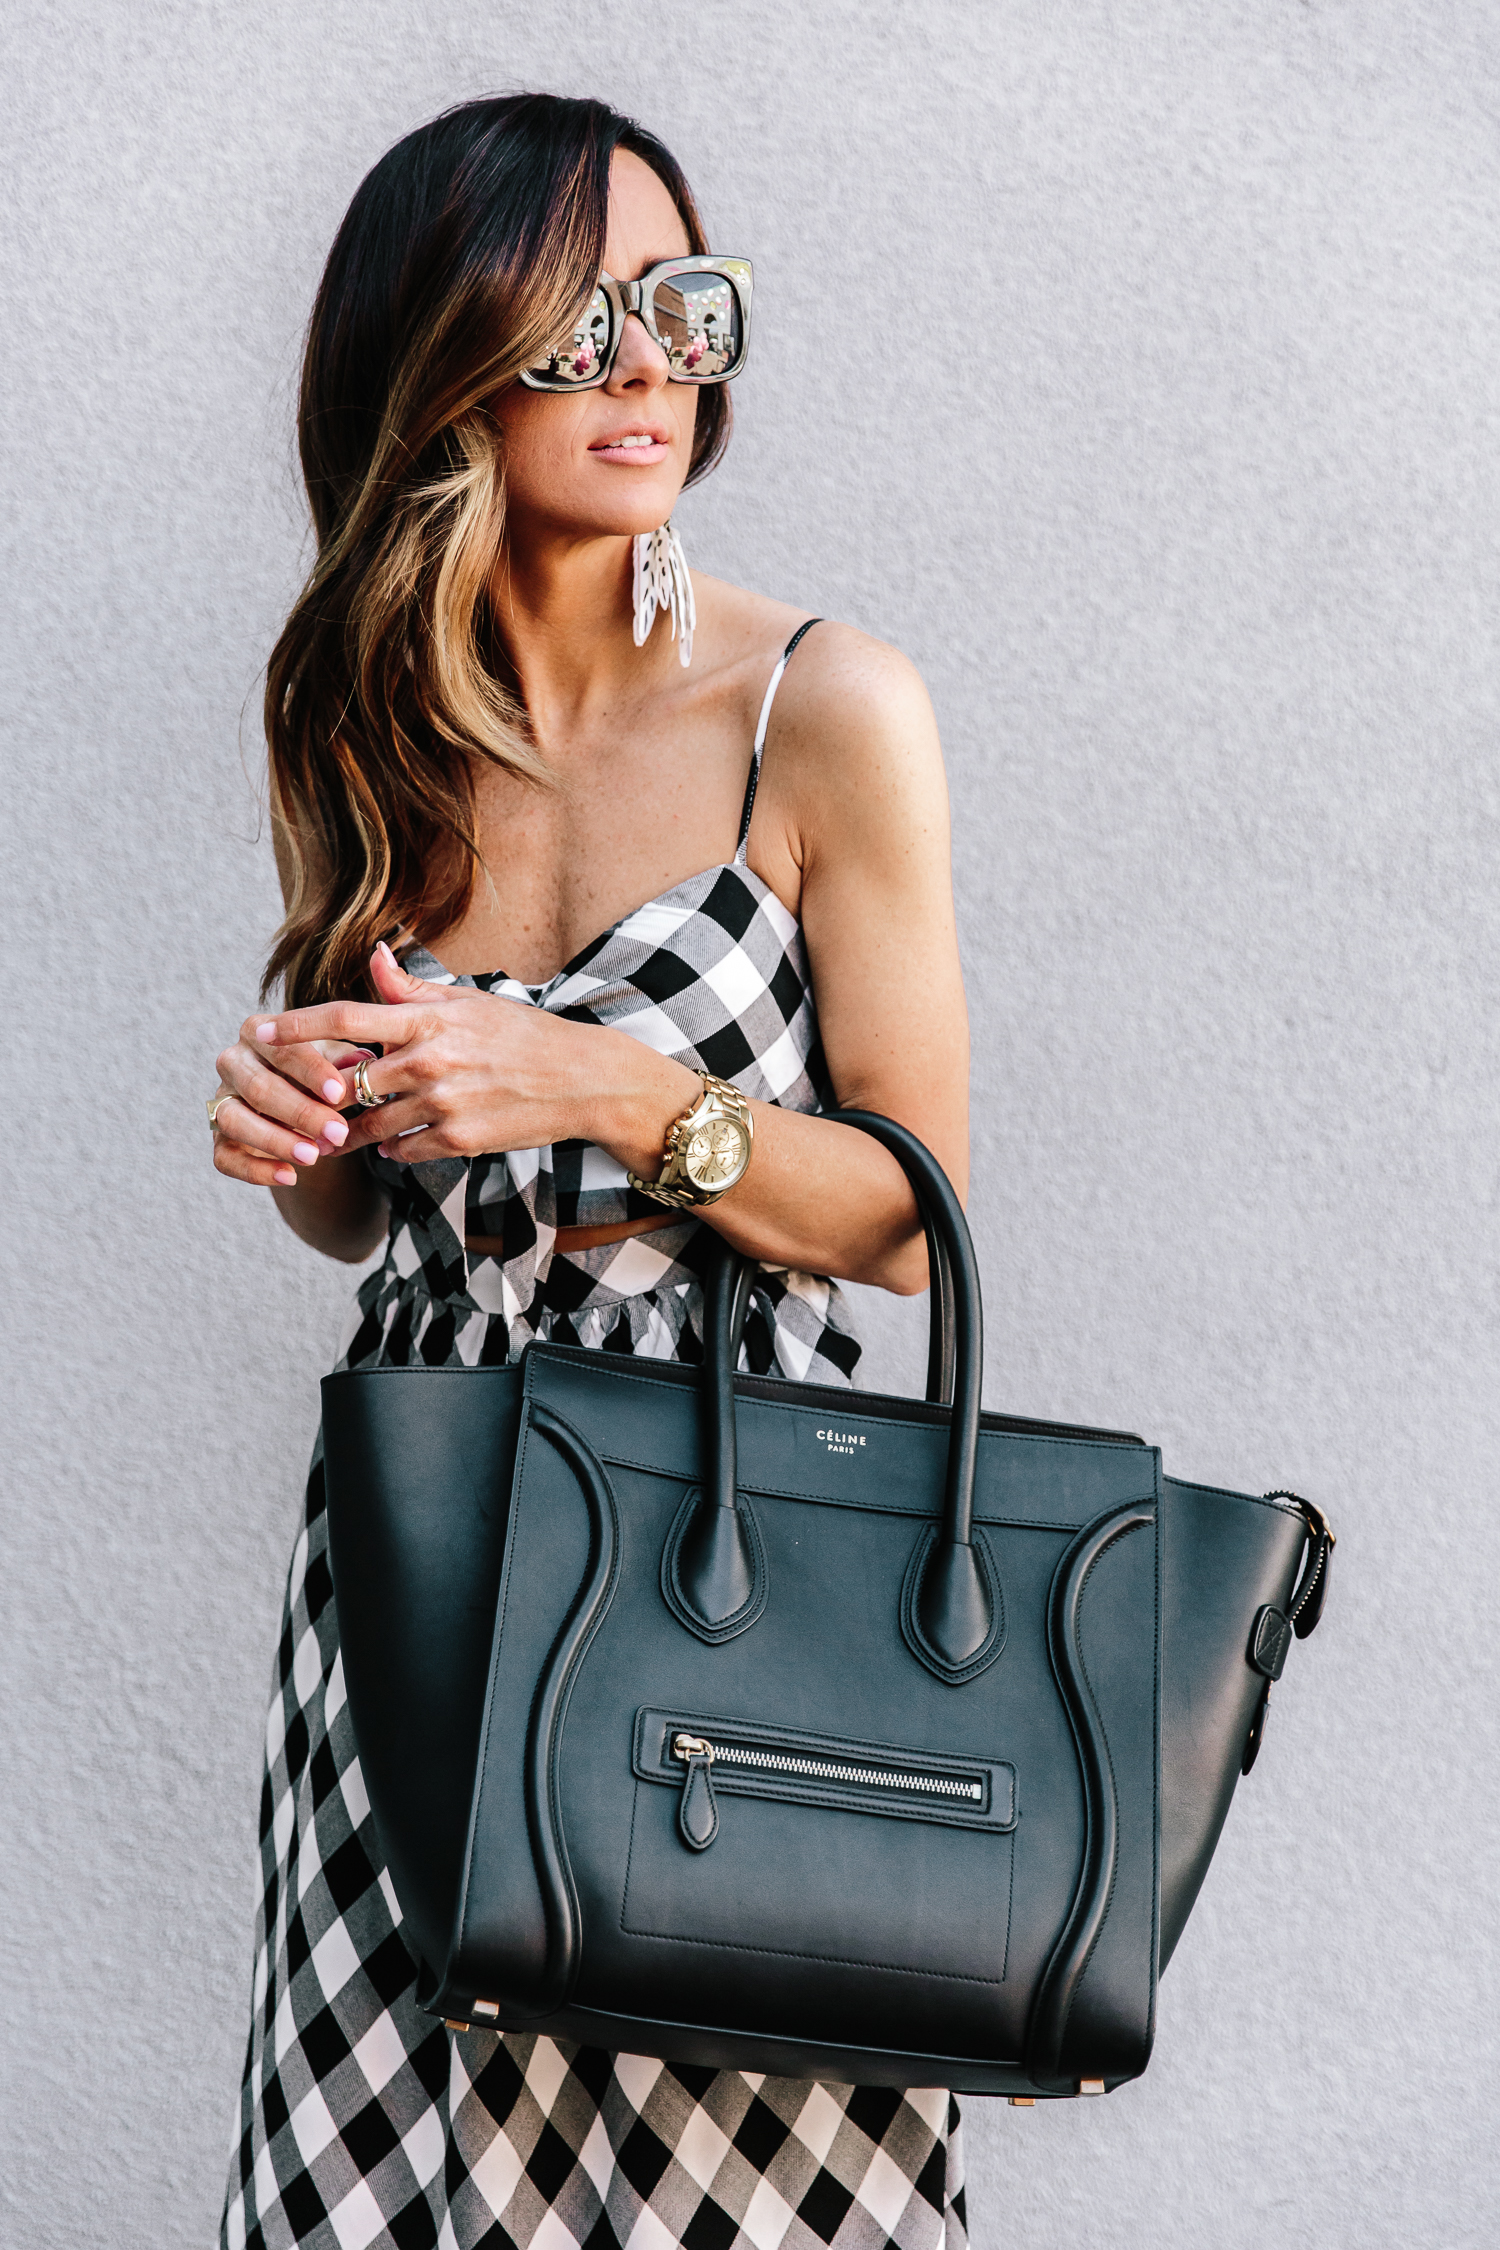 gingham, nordstrom, spring trends, celine handbag, spring dresses, statement earrings